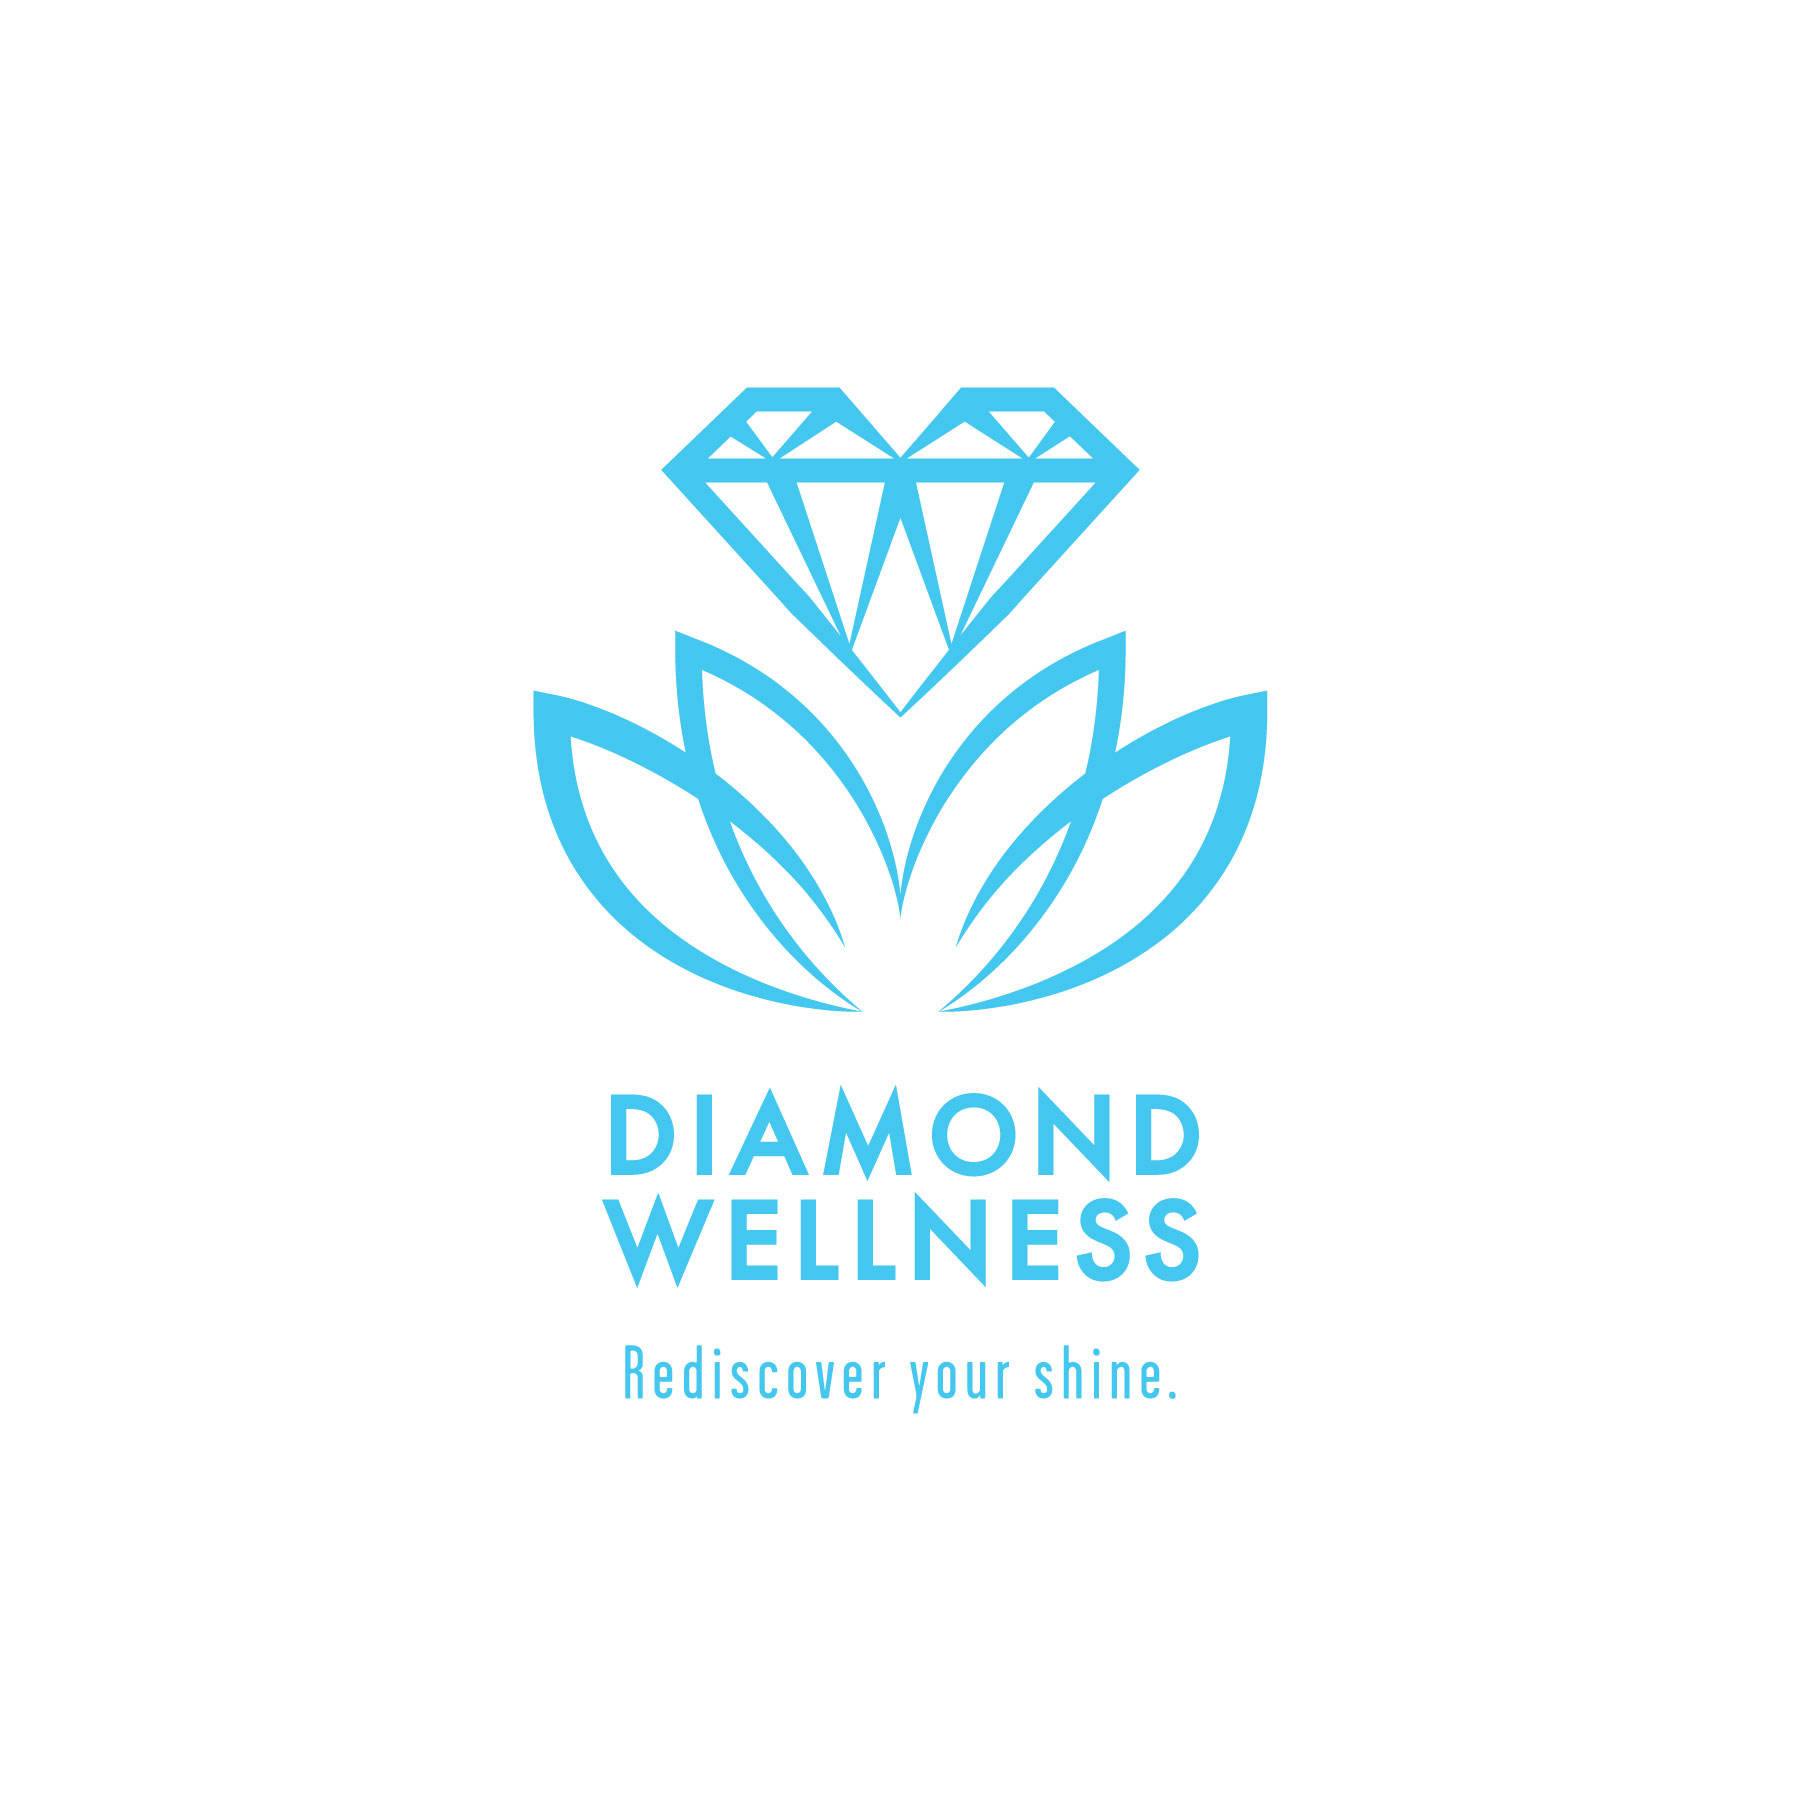 Diamond Wellness